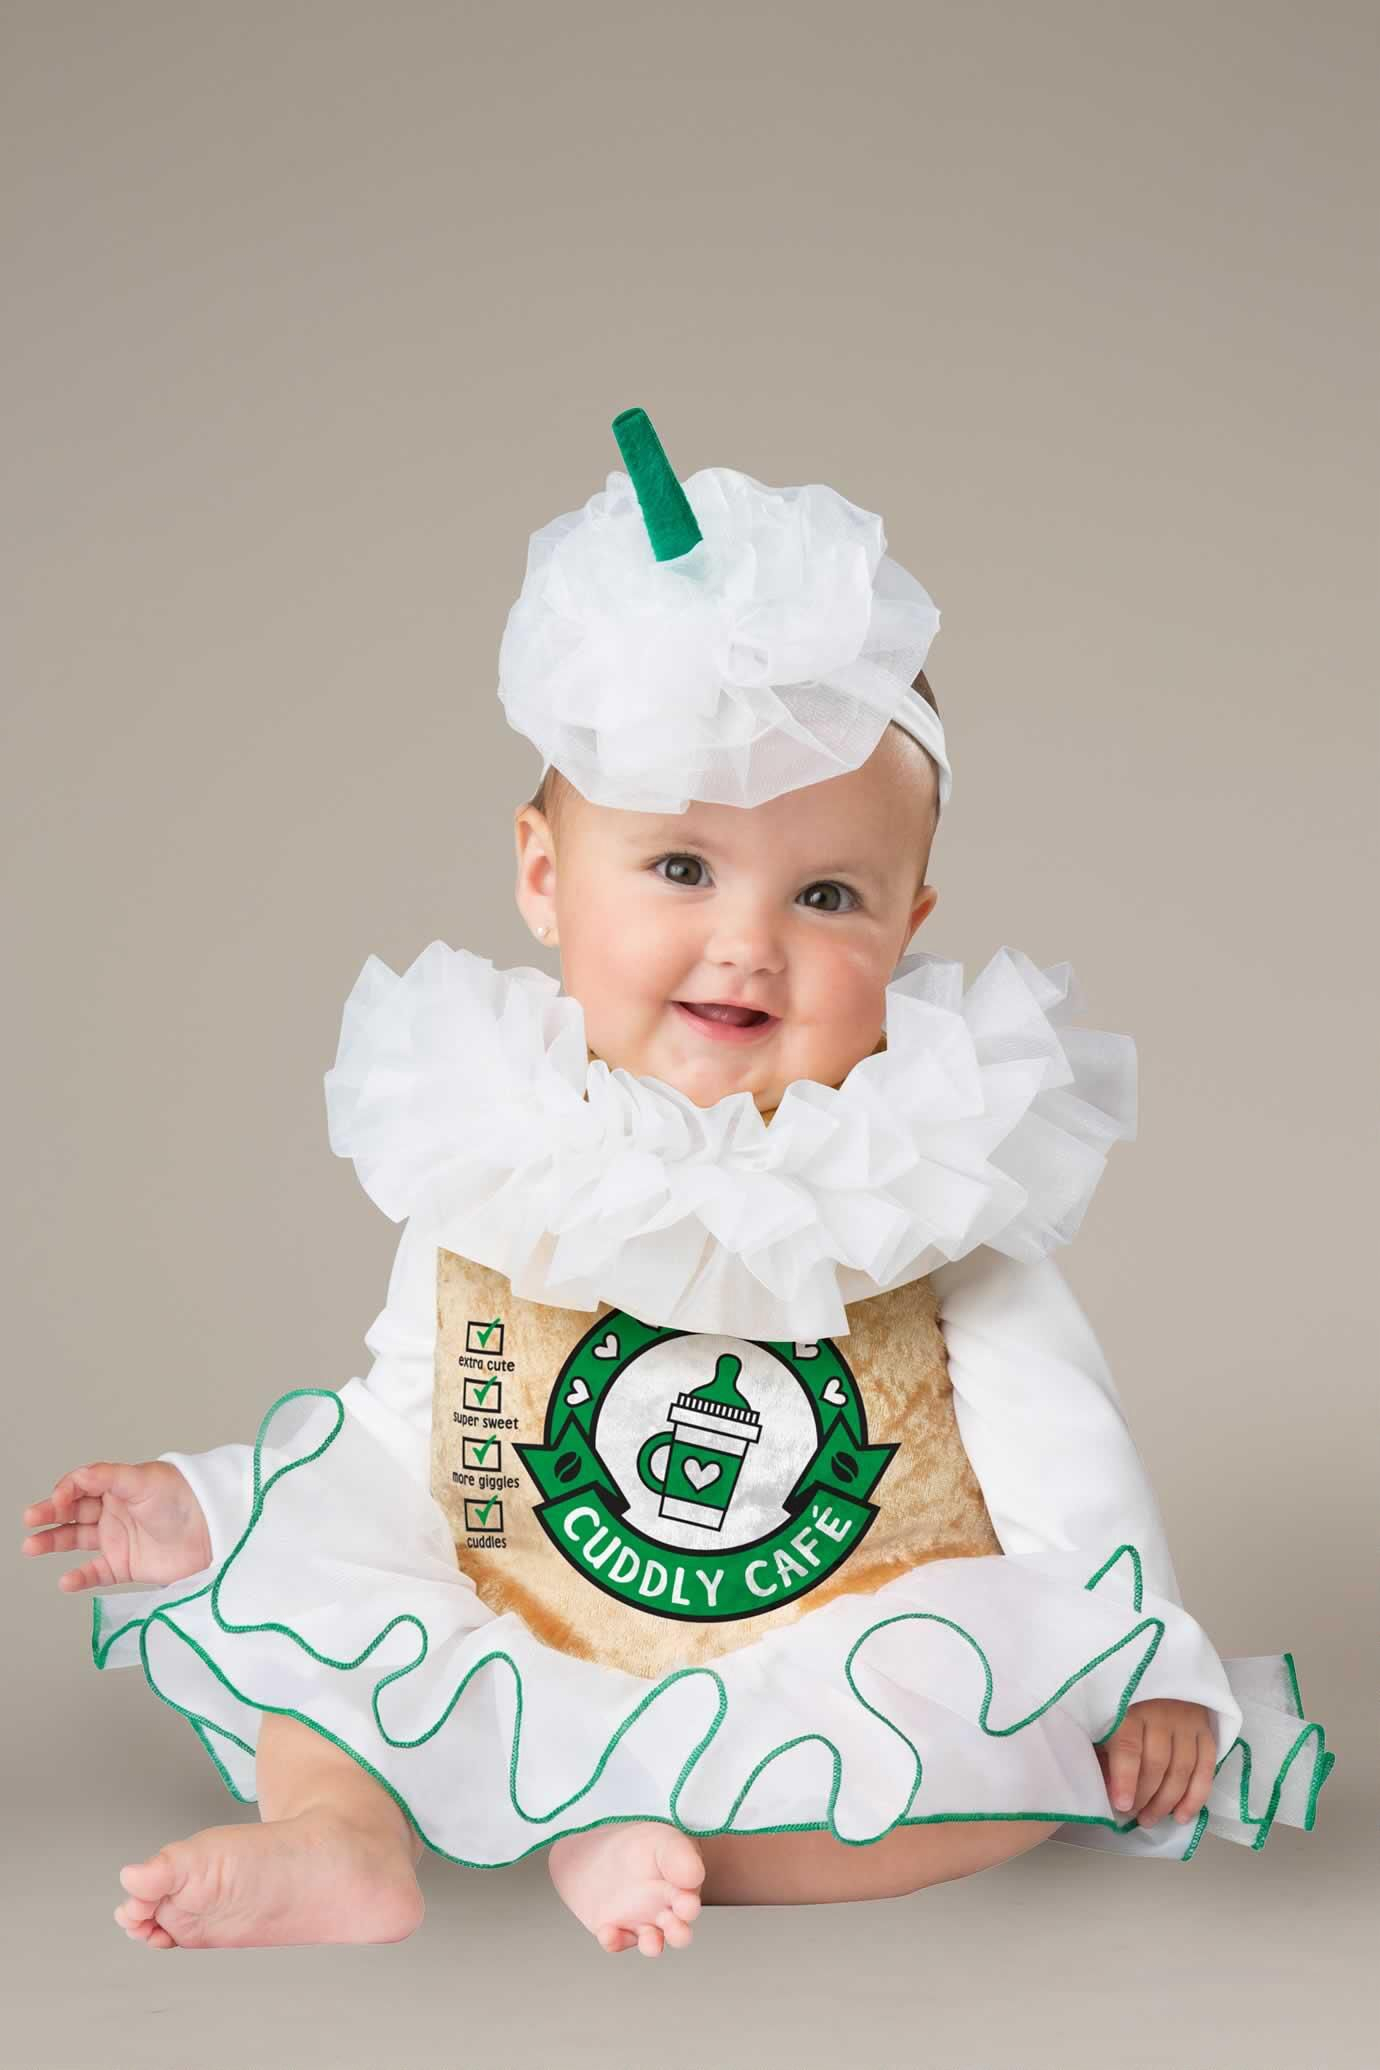 10 Wonderful Baby Costume Ideas For Girls 27 cute baby halloween costumes 2018 best ideas for boy girl 2021